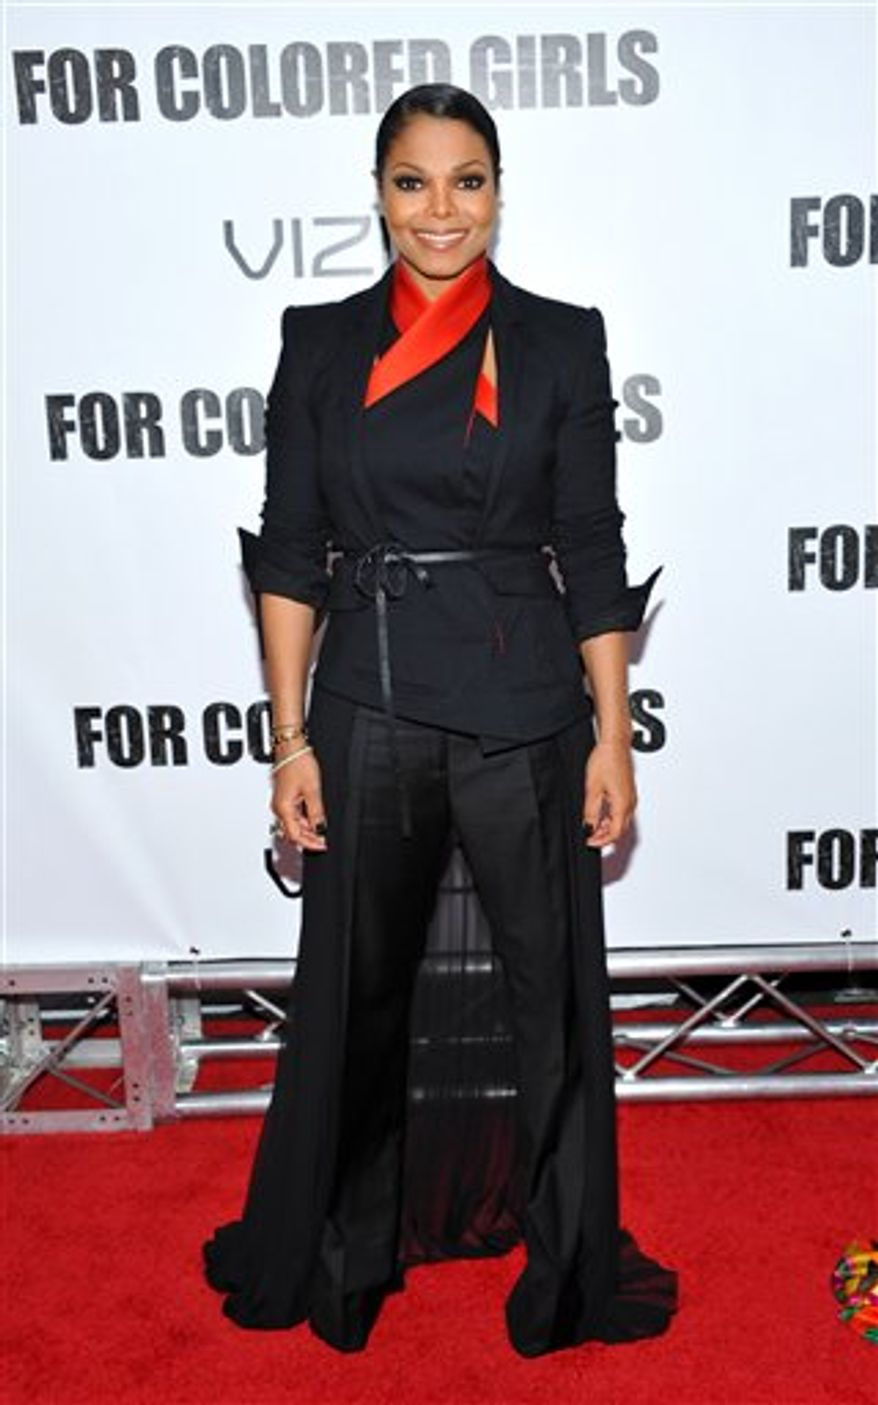 Actress Janet Jackson attends a special screening of 'For Colored Girls' at the Ziegfeld Theatre on Monday, Oct. 25, 2010 in New York. (AP Photo/Evan Agostini)